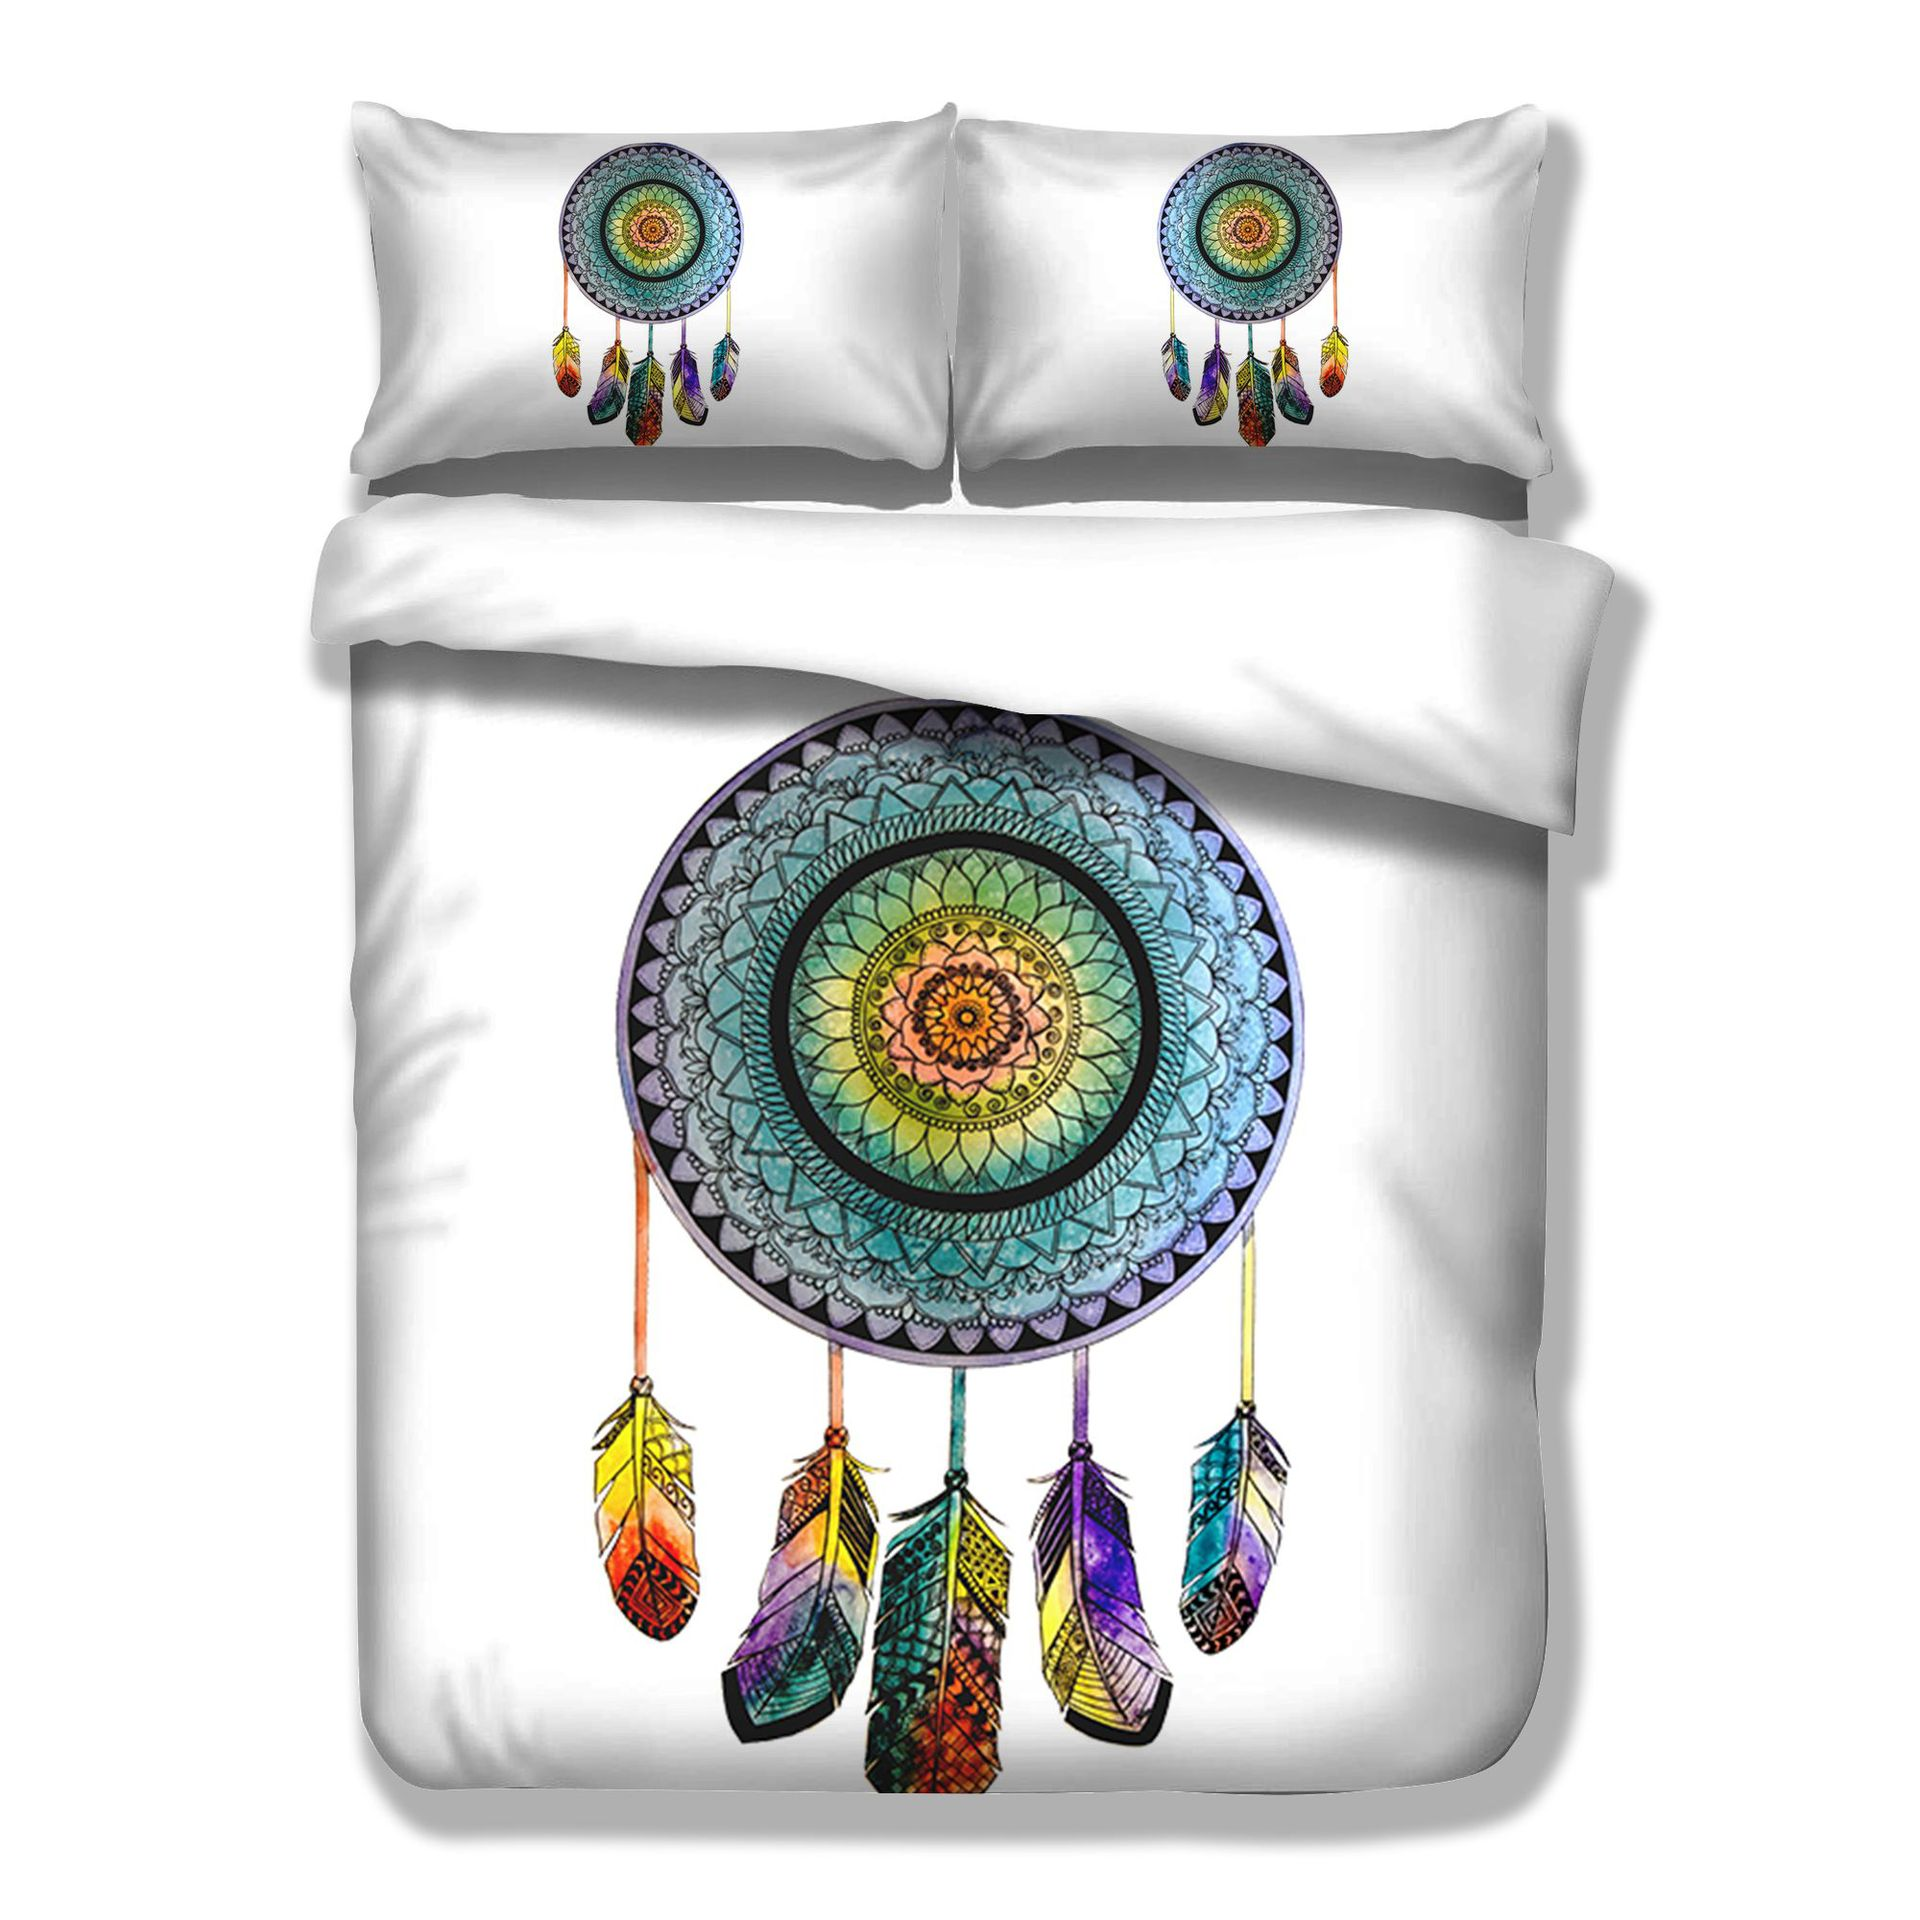 India Bohemian Style Bedding Set Feather Printed Bedlinen Set Queen Size Datura Duvet Cover Pillowcase Dreamcatcher Us King Size Power Source